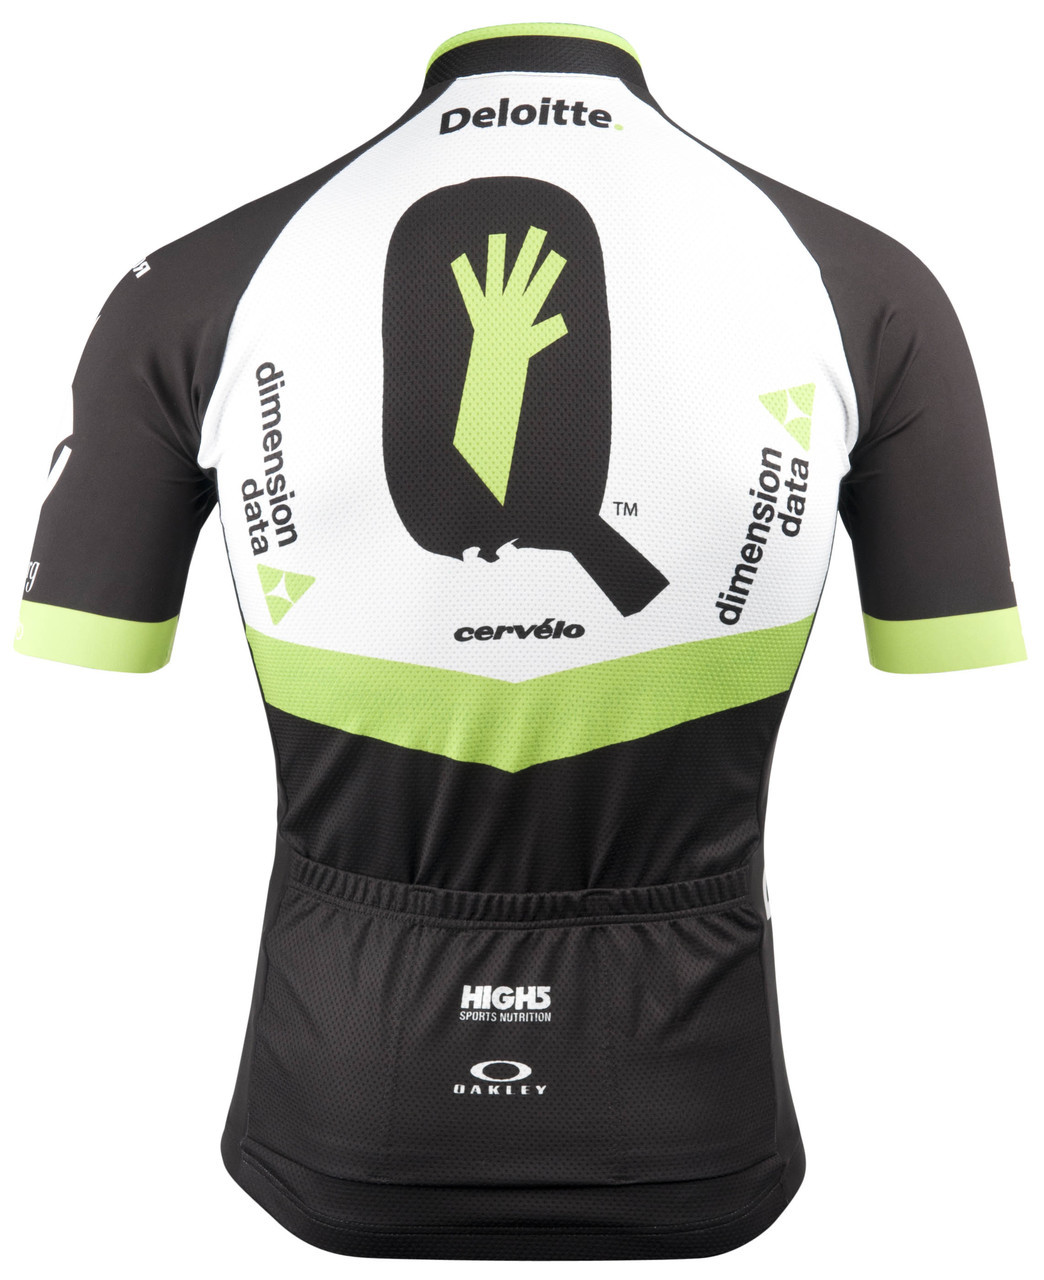 2017 Dimension Data Jersey Rear